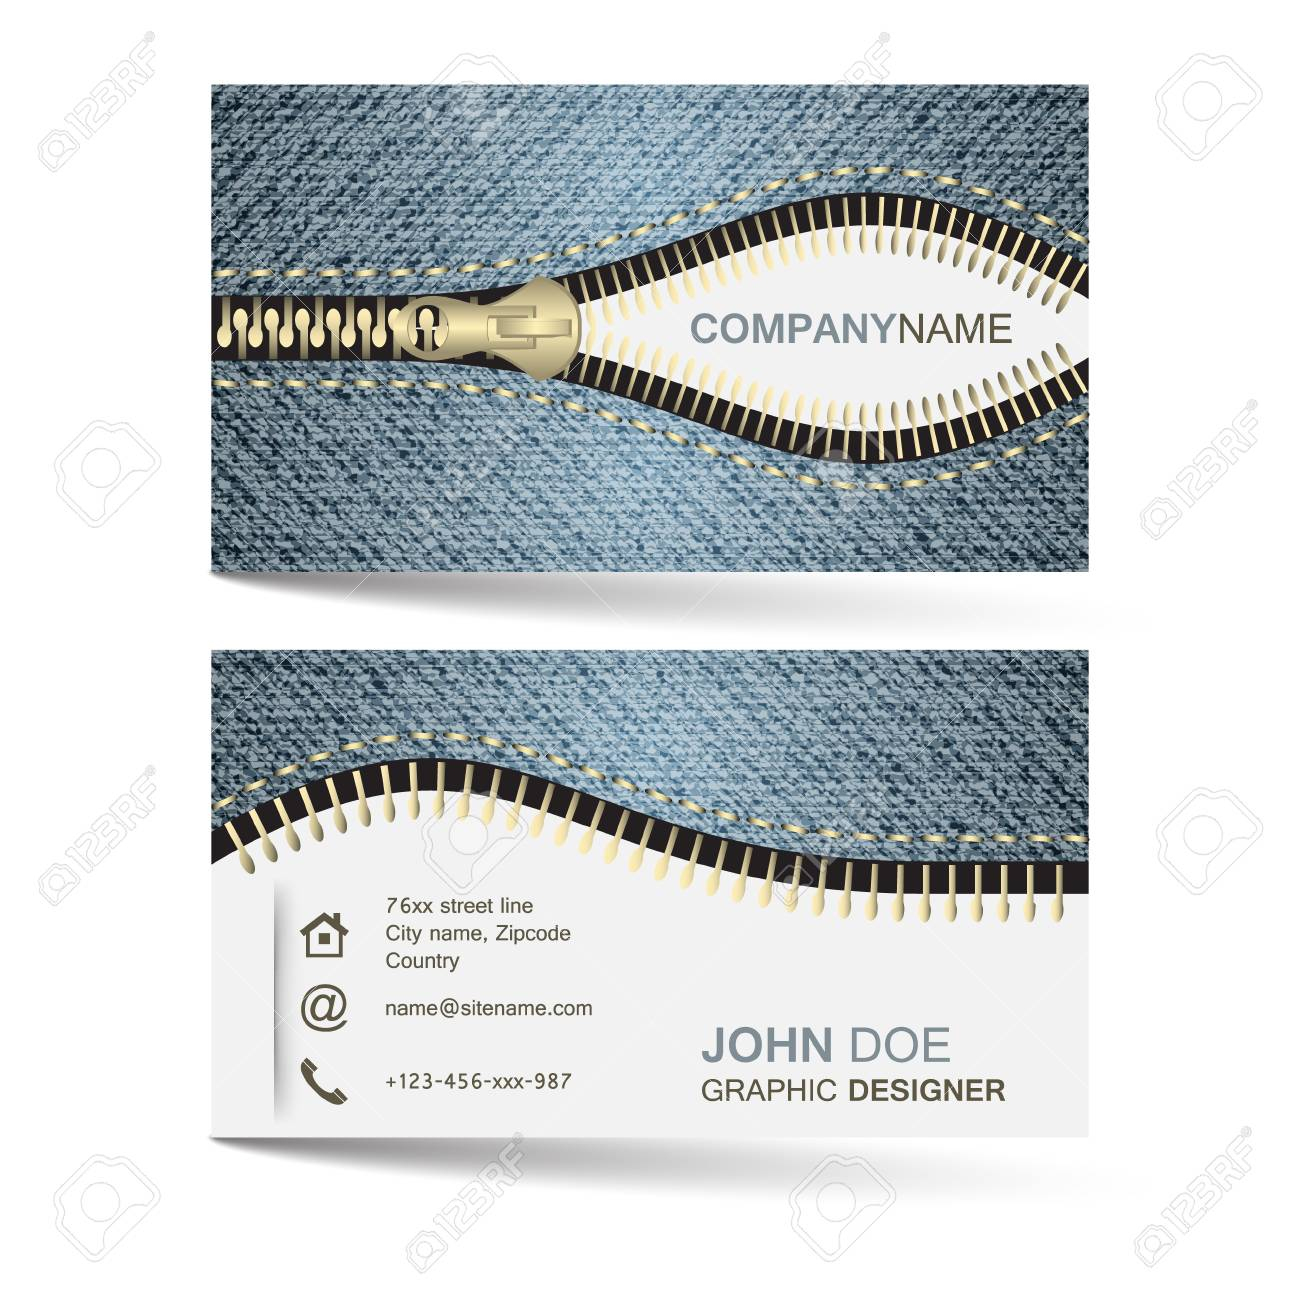 Business Card Template With Denim Jeans Pattern And Zipper For Royalty Free Cliparts Vectors And Stock Illustration Image 44525923